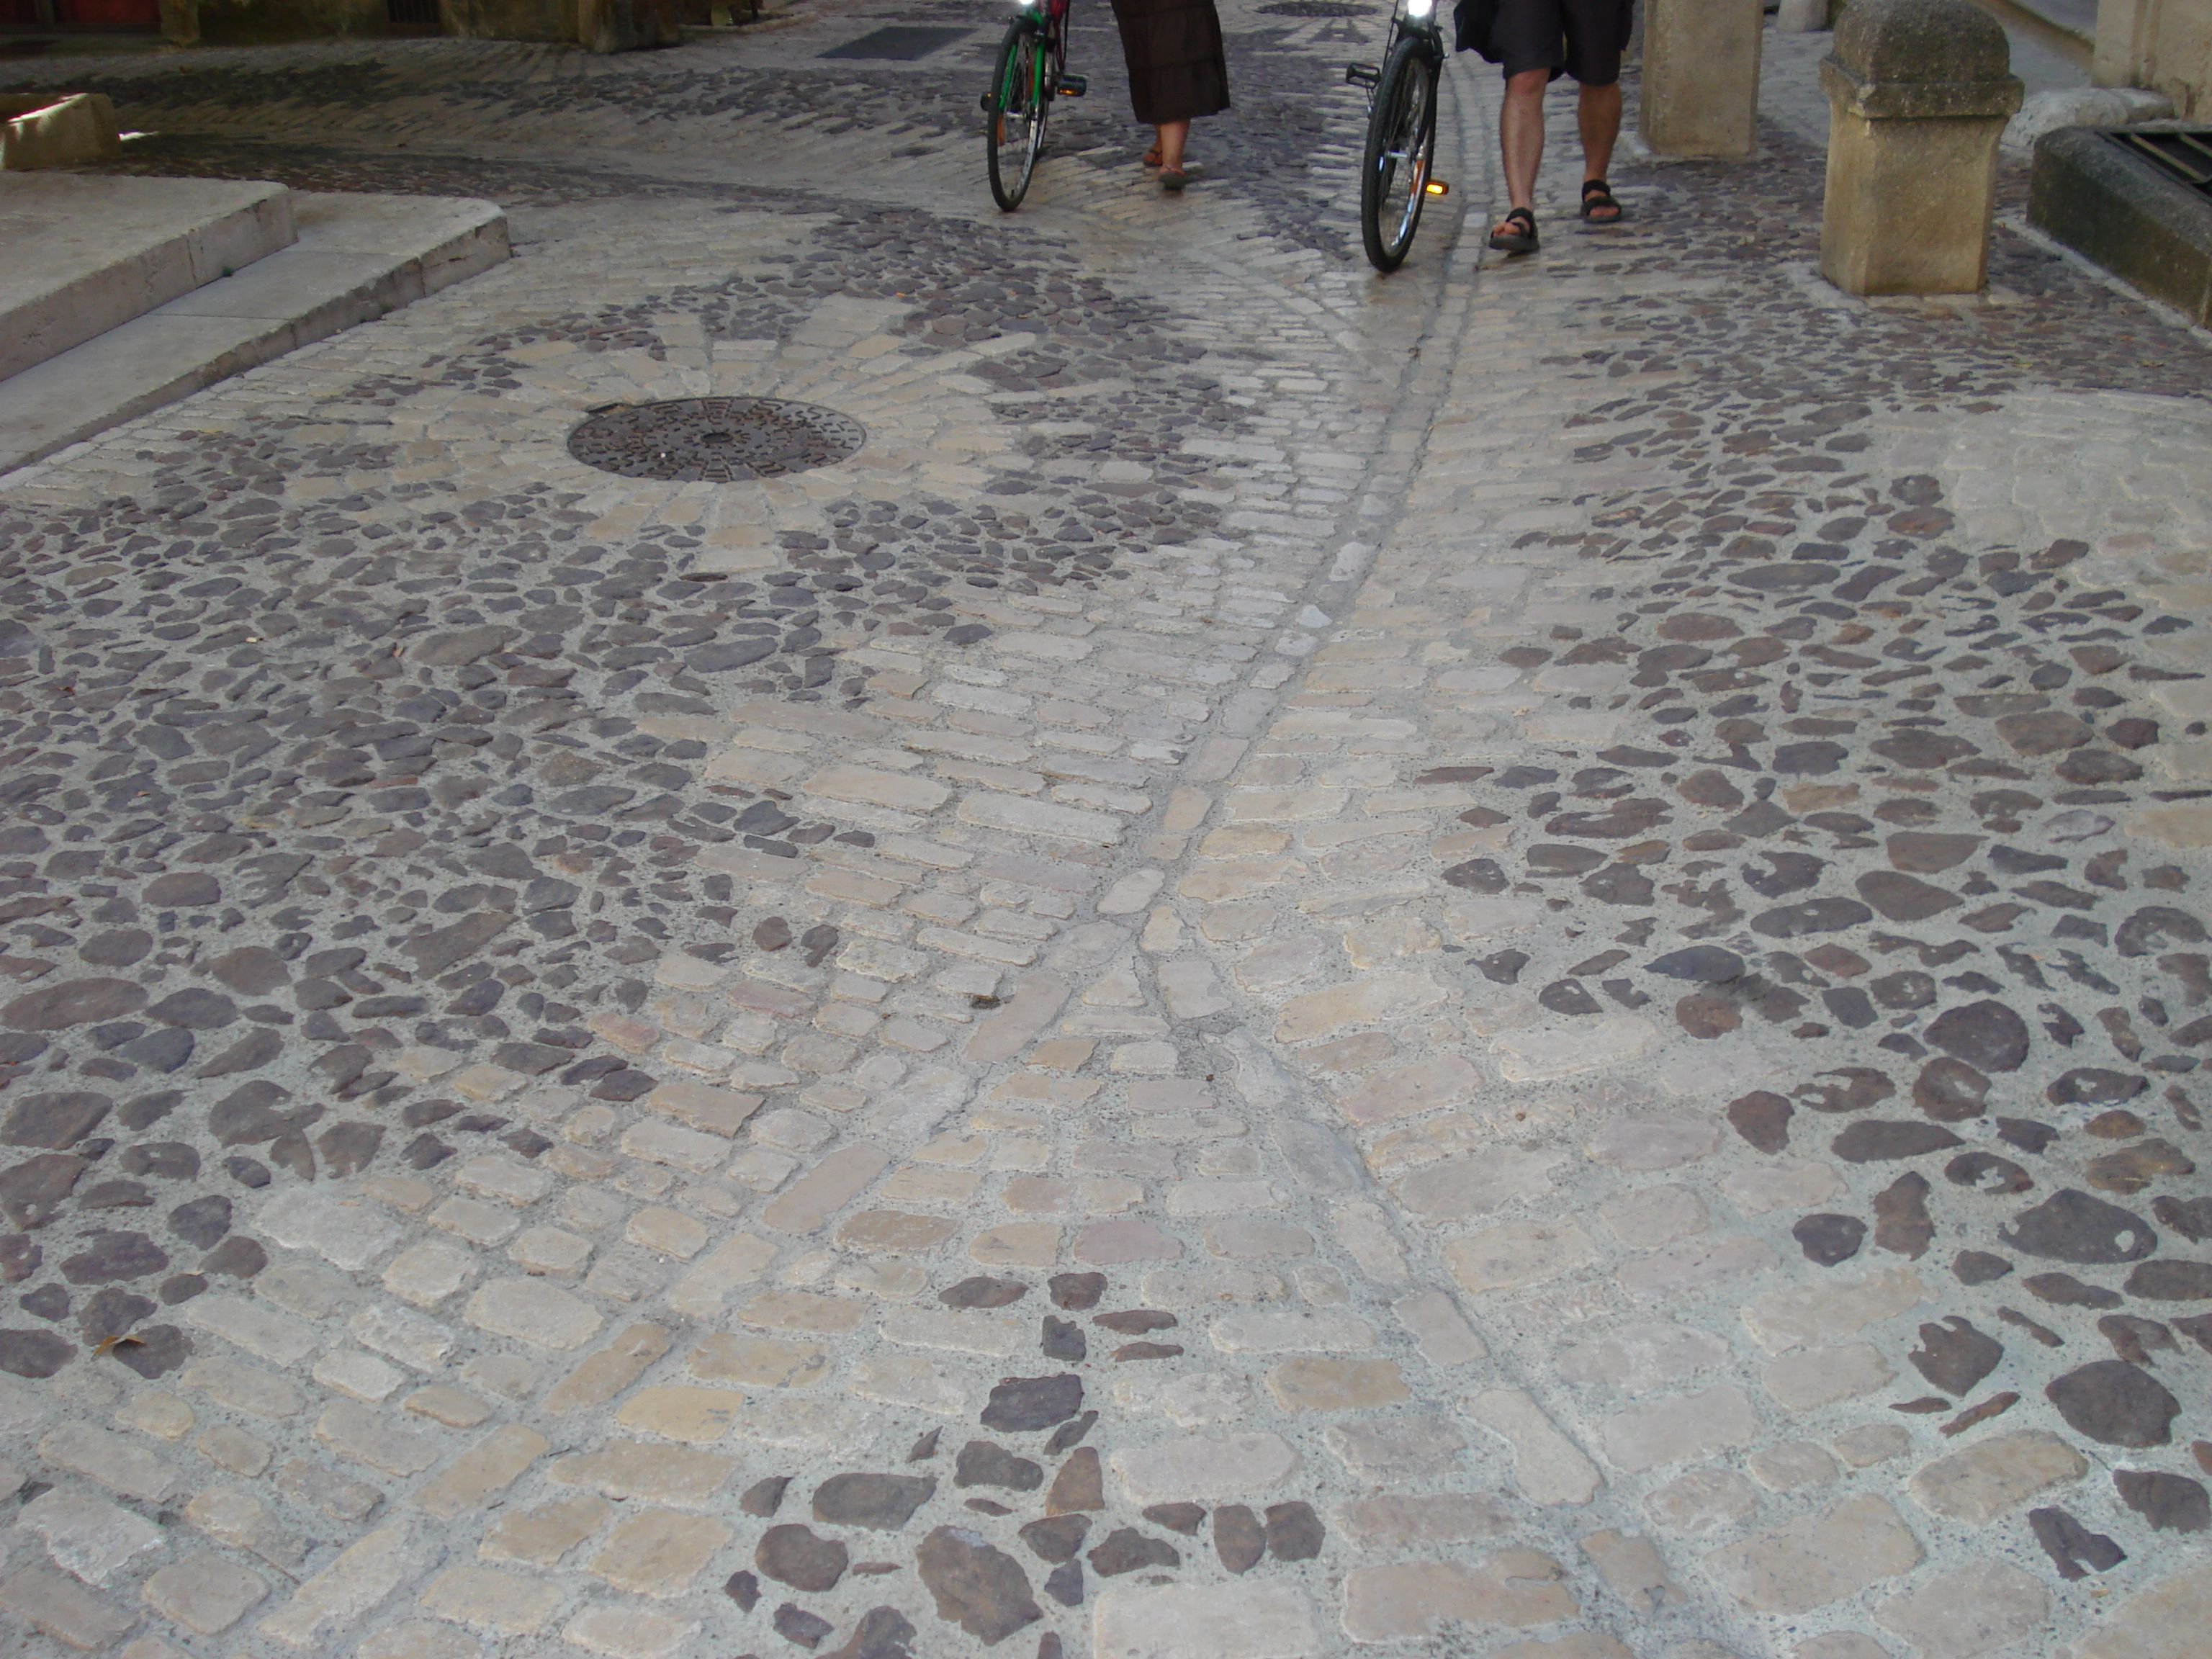 Concrete Cobble Street : Stone sett and cobble paving beautifully detailed surface